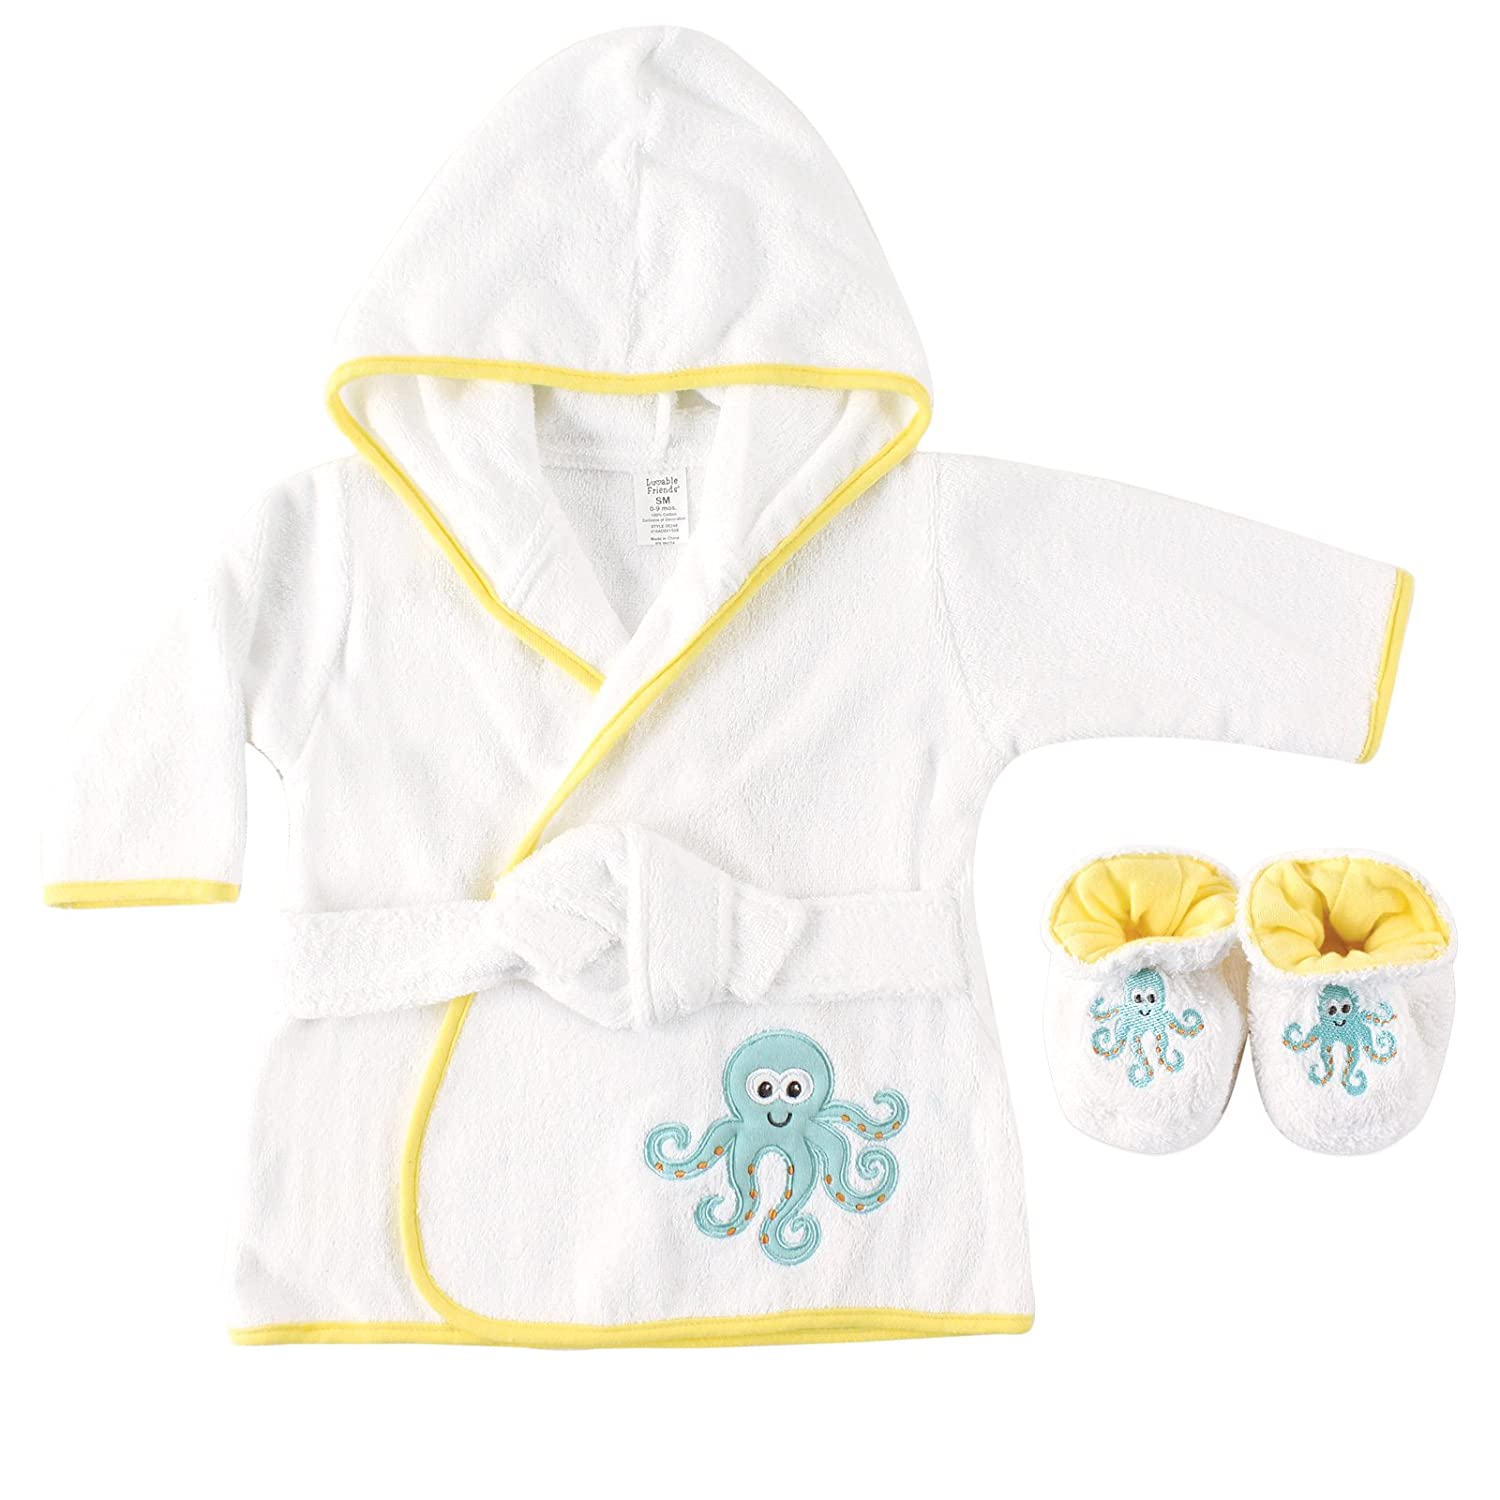 Luvable Friends Woven Terry Baby Bath Robe with Slippers Yellow Discontinued by Manufacturer